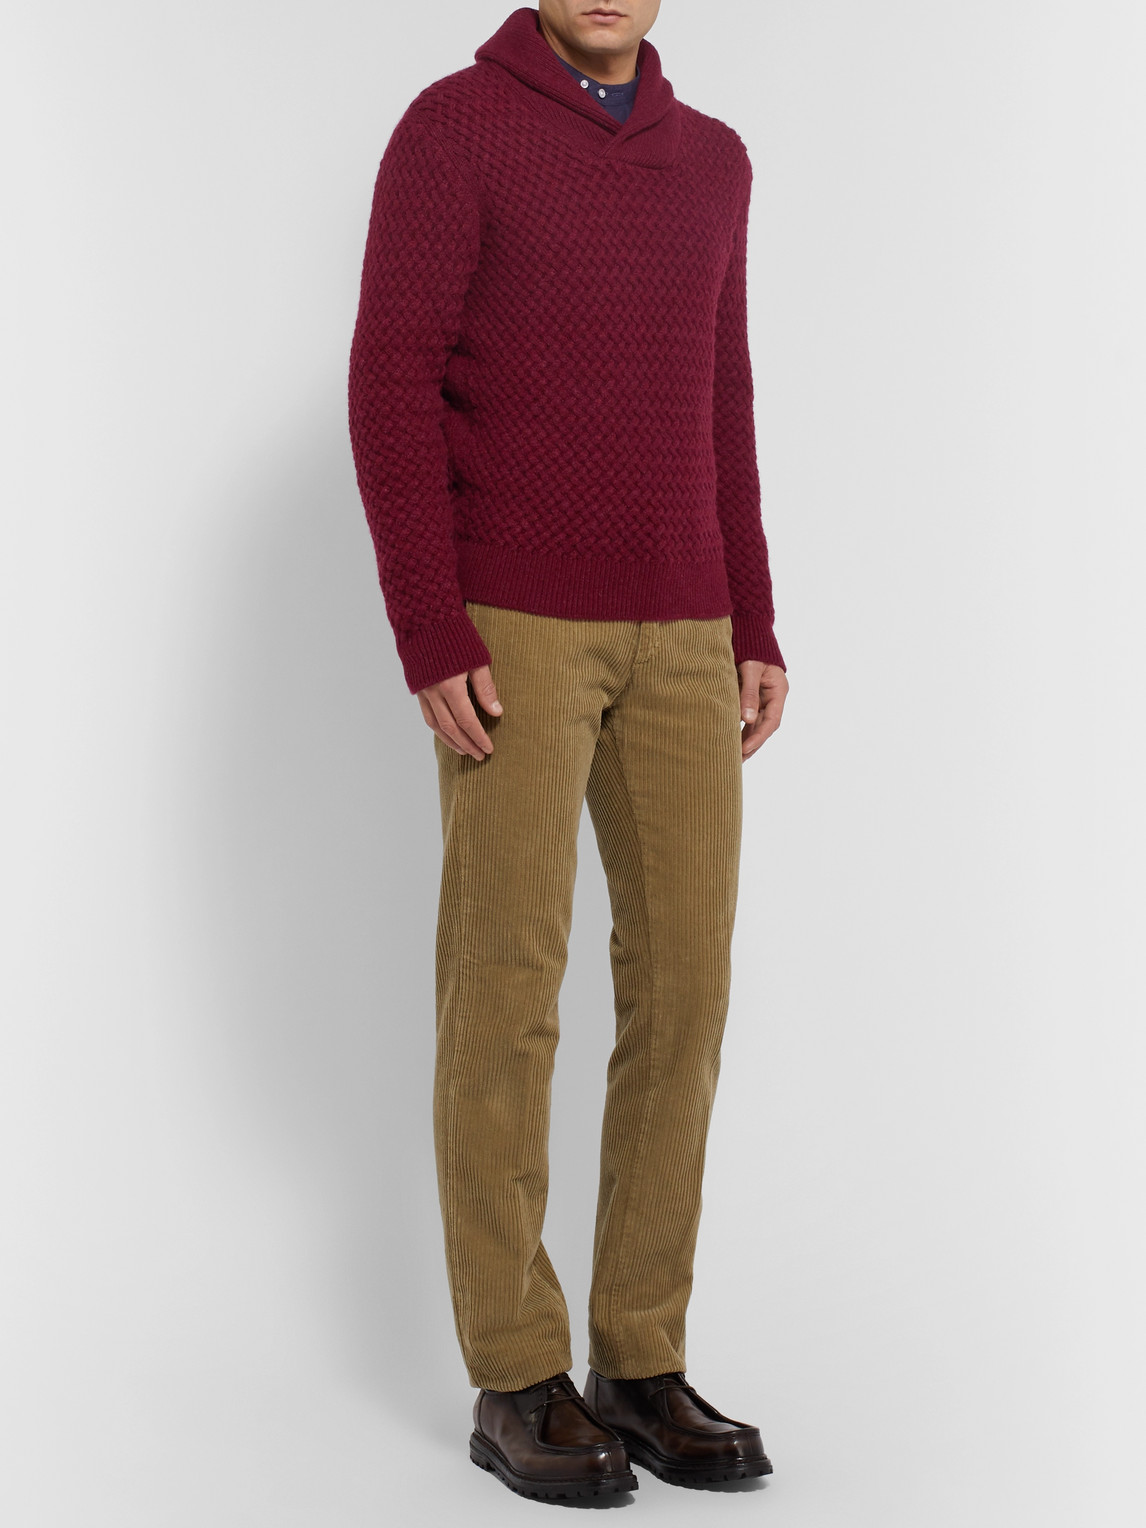 Isaia Knits SLIM-FIT SHAWL-COLLAR CABLE-KNIT CASHMERE SWEATER